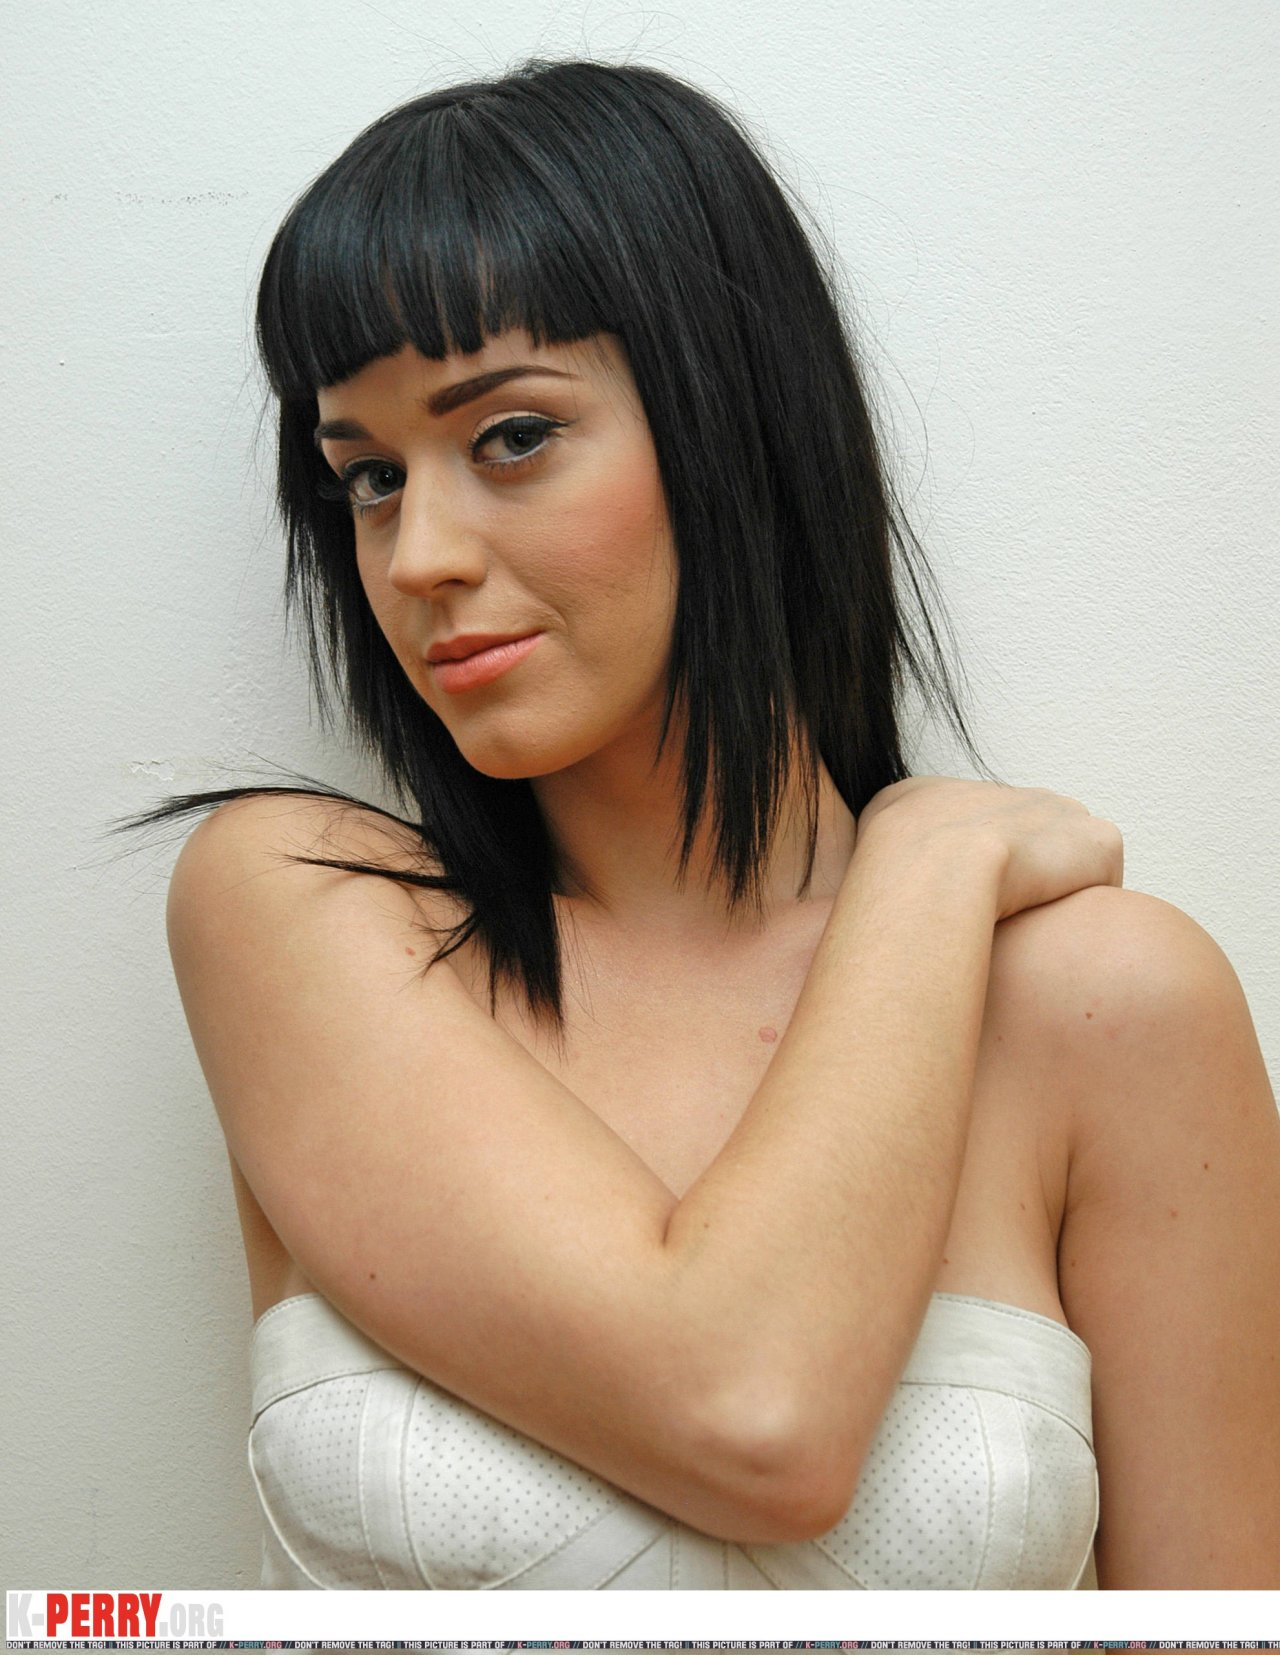 Katy Perry Wallpapers (83283). Beautiful Katy Perry Pictures And Wallpaper